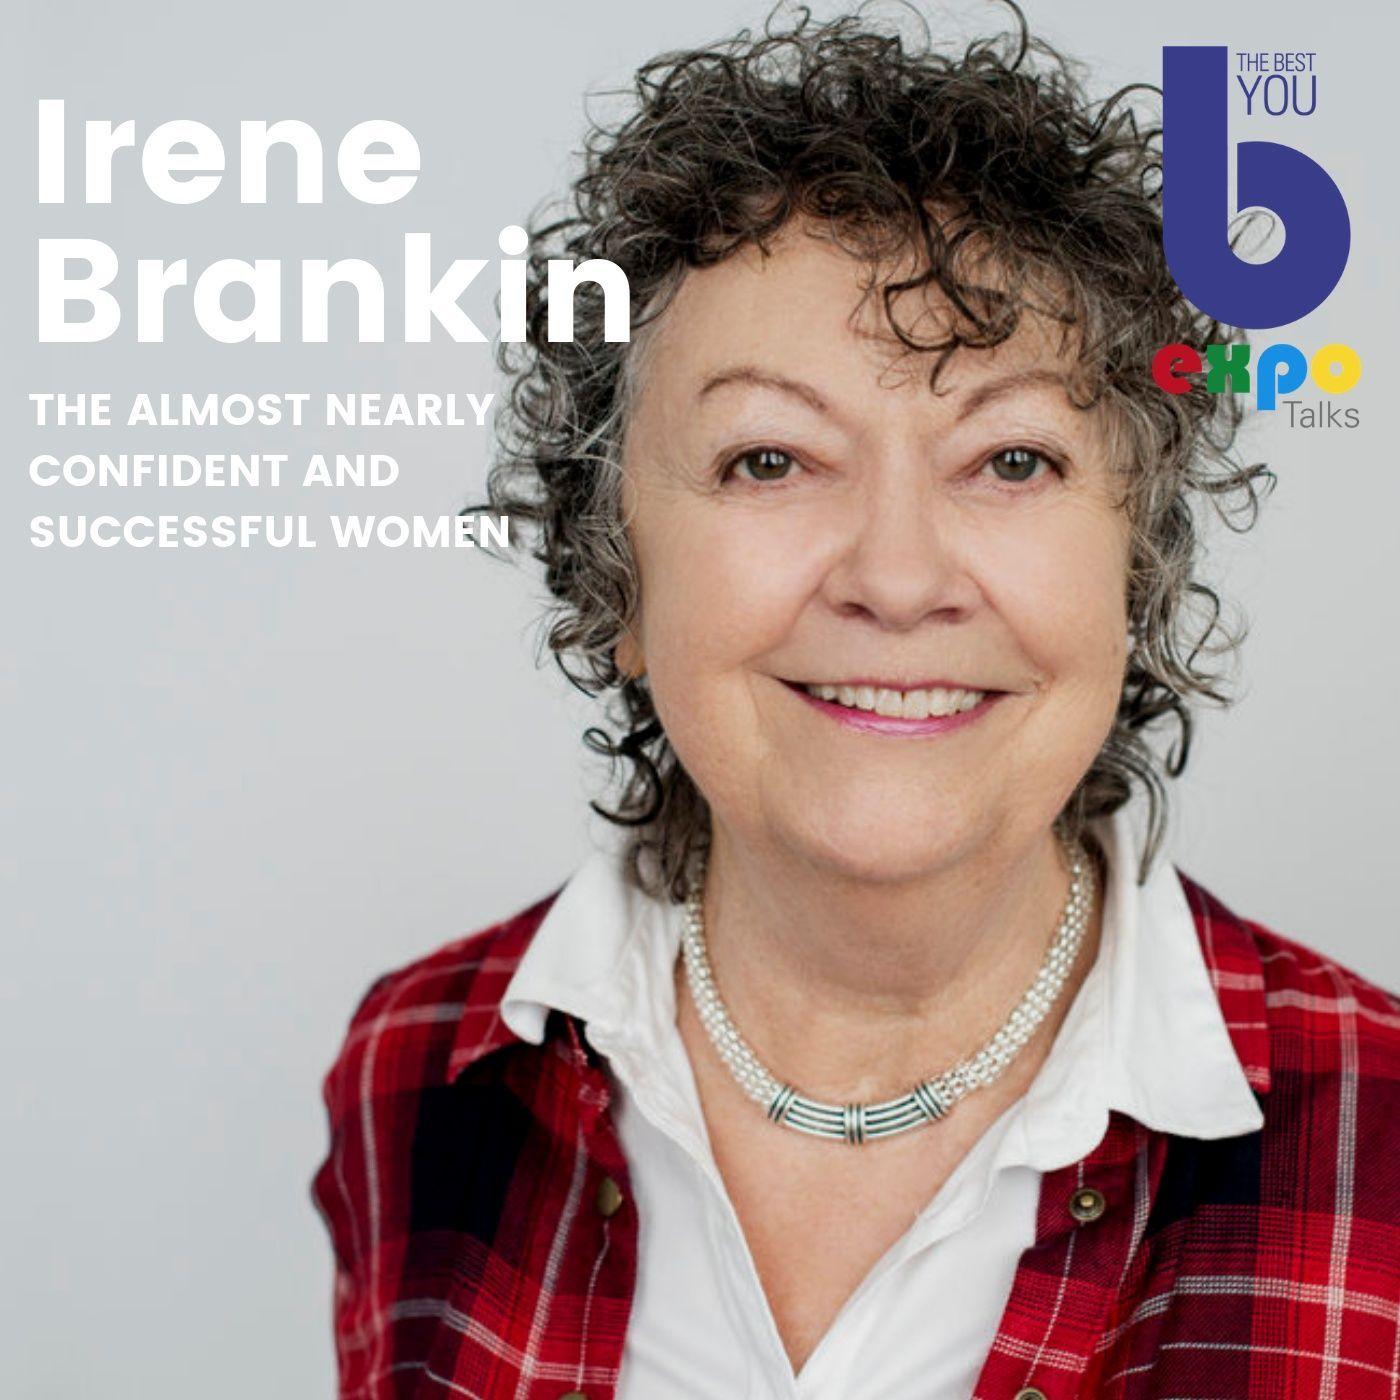 Listen to Irene Brankin at The Best You EXPO